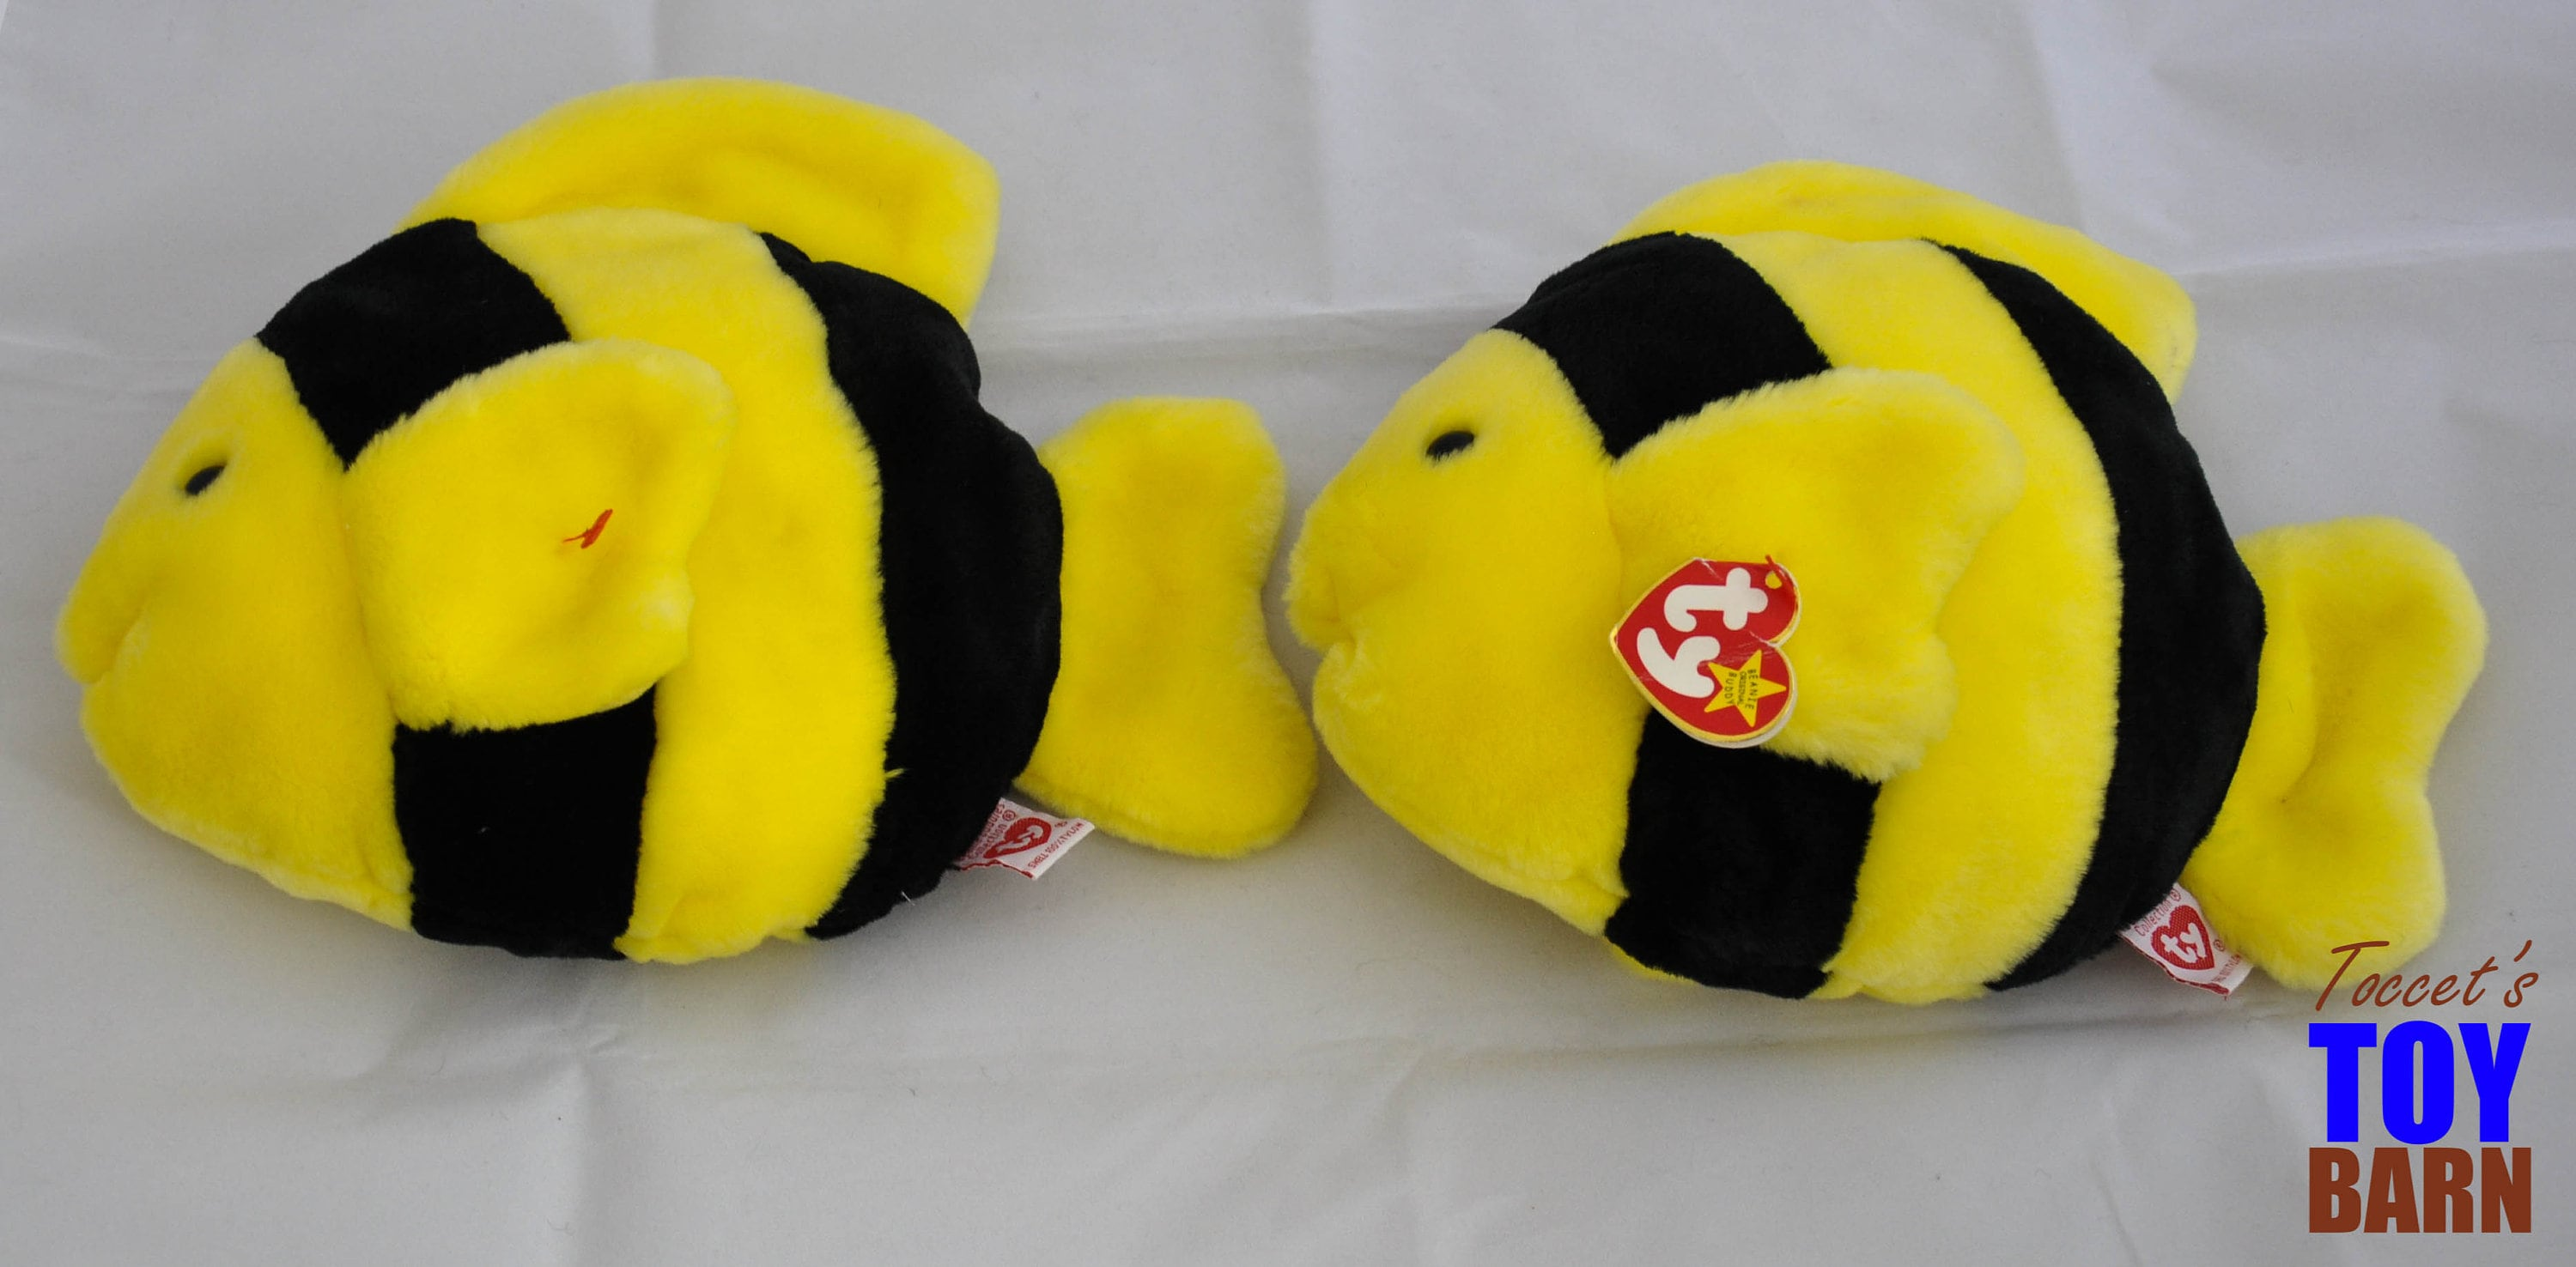 632f9637abc Bubbles the Vintage 1995 Ty Beanie Baby and Beanie Buddy Plush ...